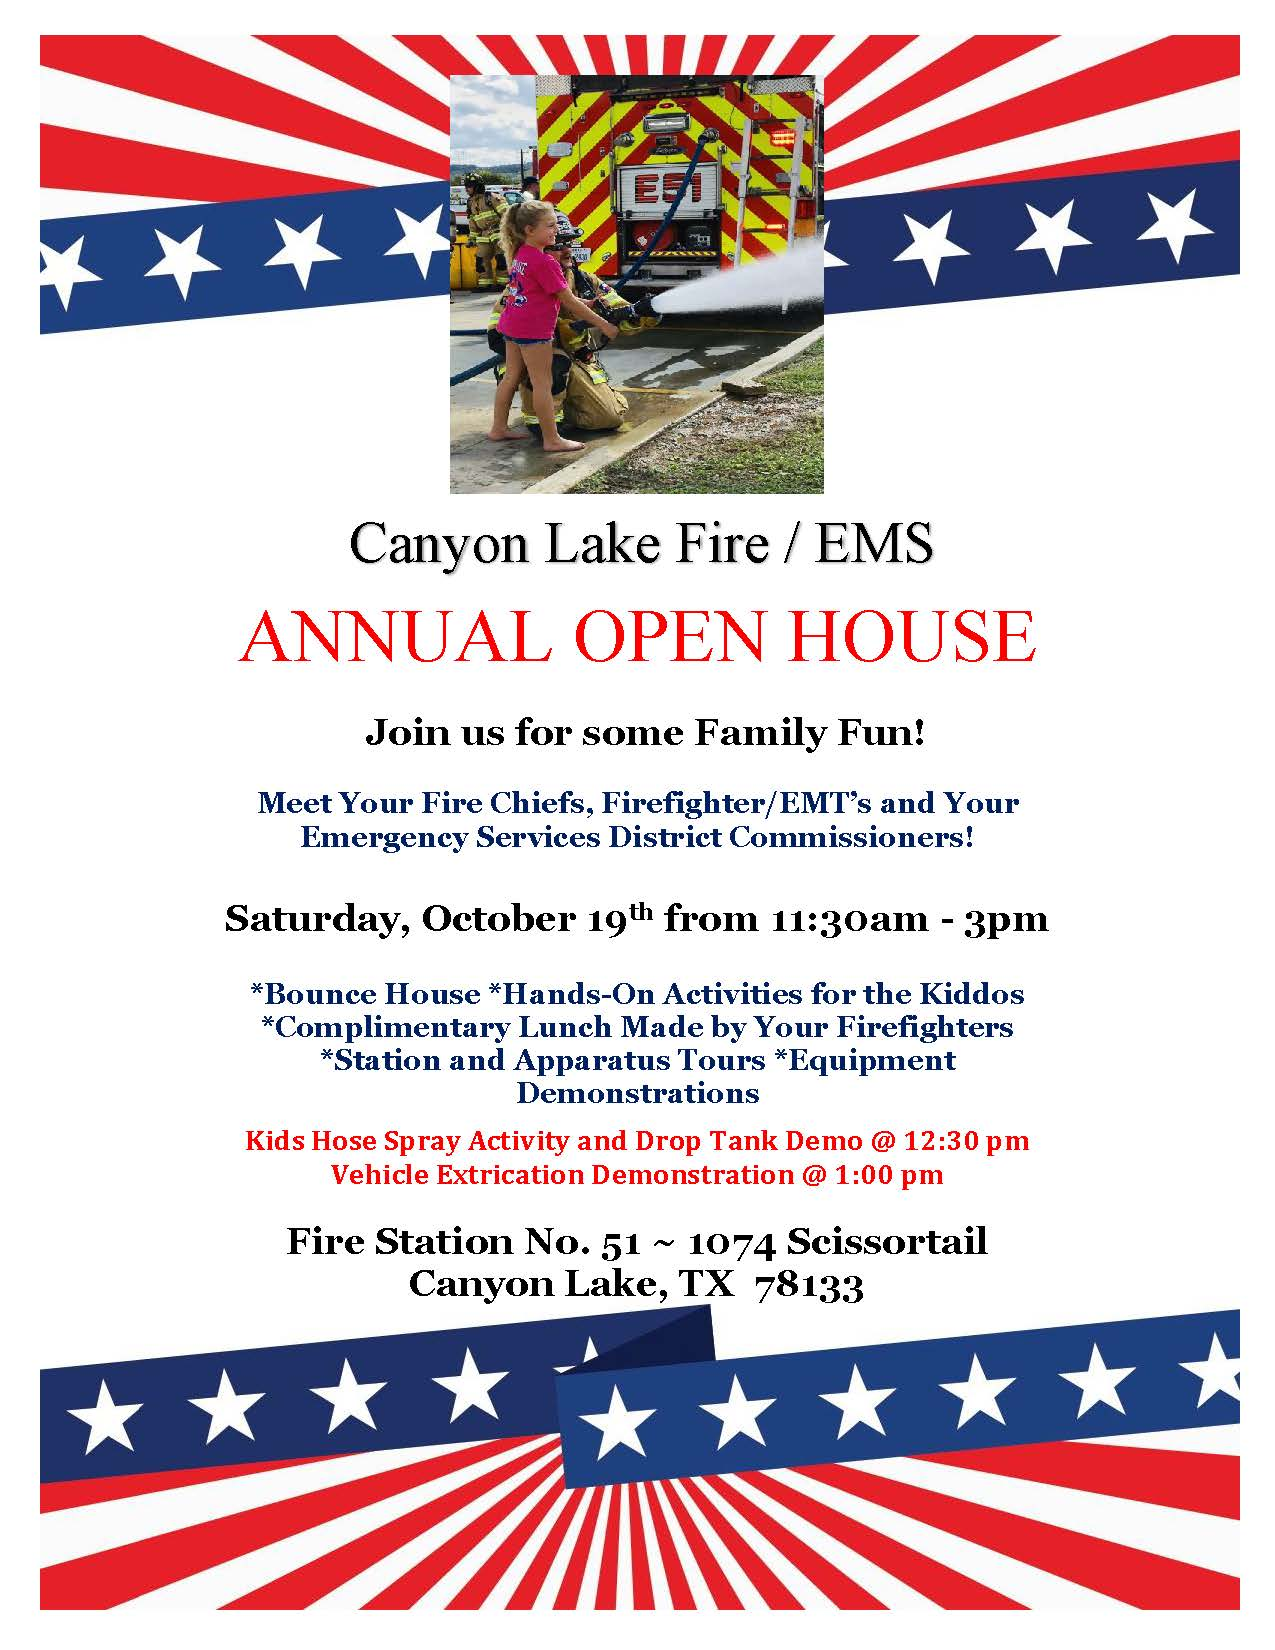 Canyon Lake Fire/EMS Open House